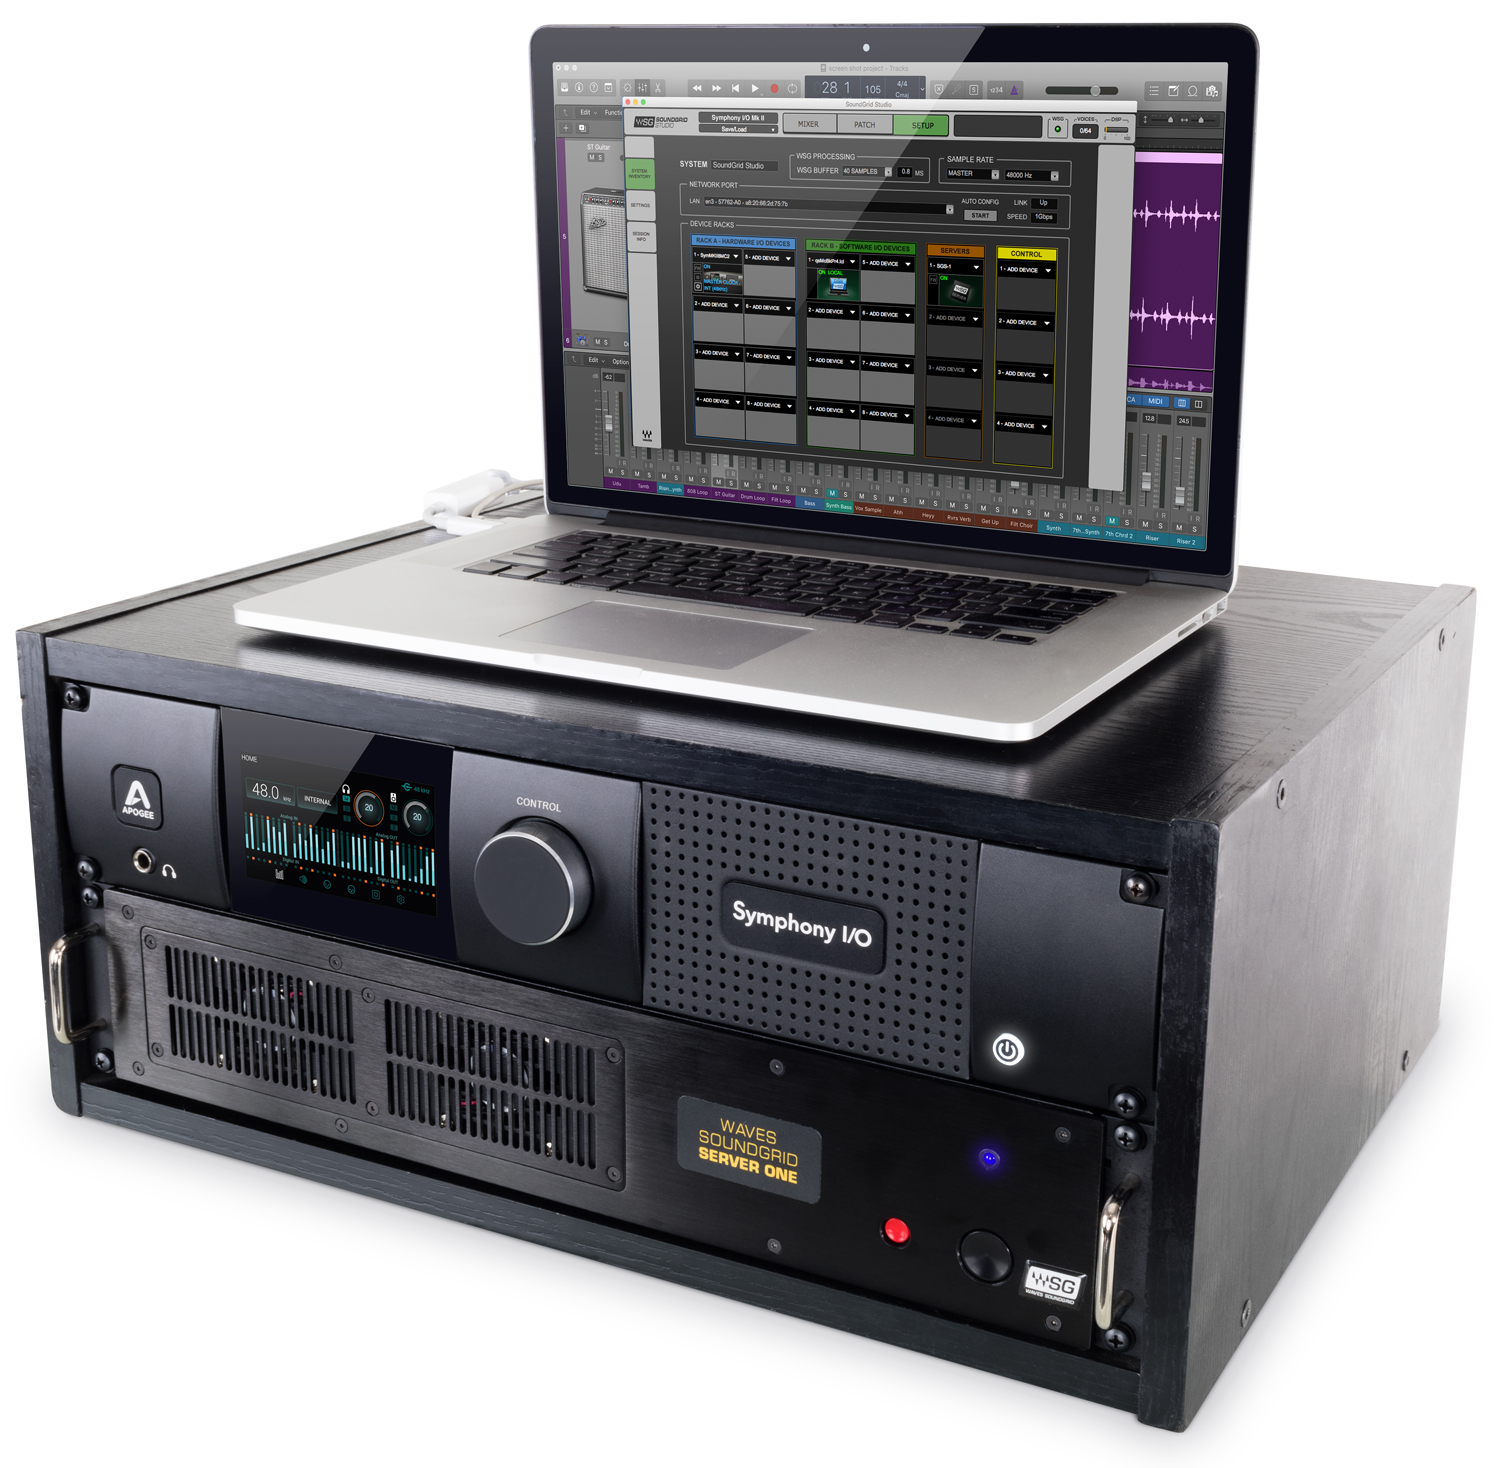 20180112_apogee_symphonyio_mkii_sg_sio-soundgrid-laptop-3-quarters-left-logic-1500